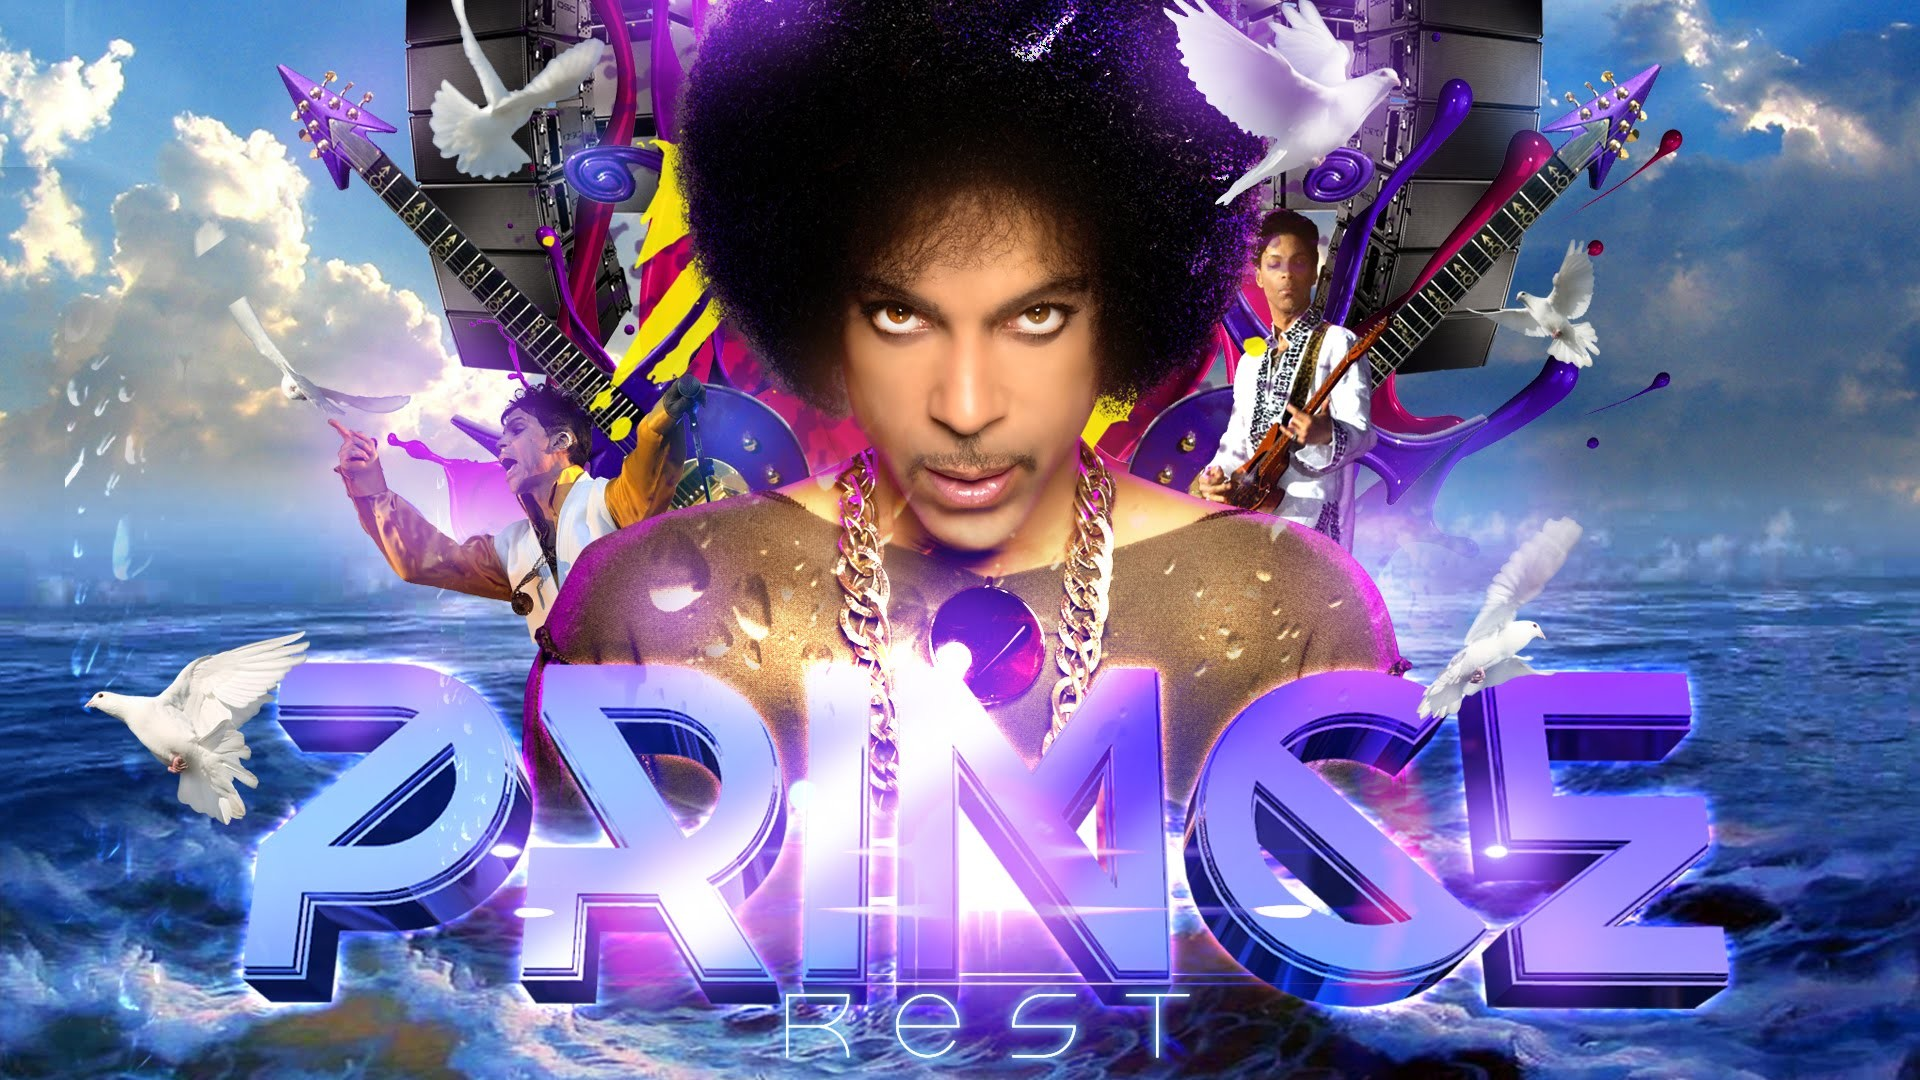 Prince rogers nelson wallpapers 69 images - Prince wallpaper ...